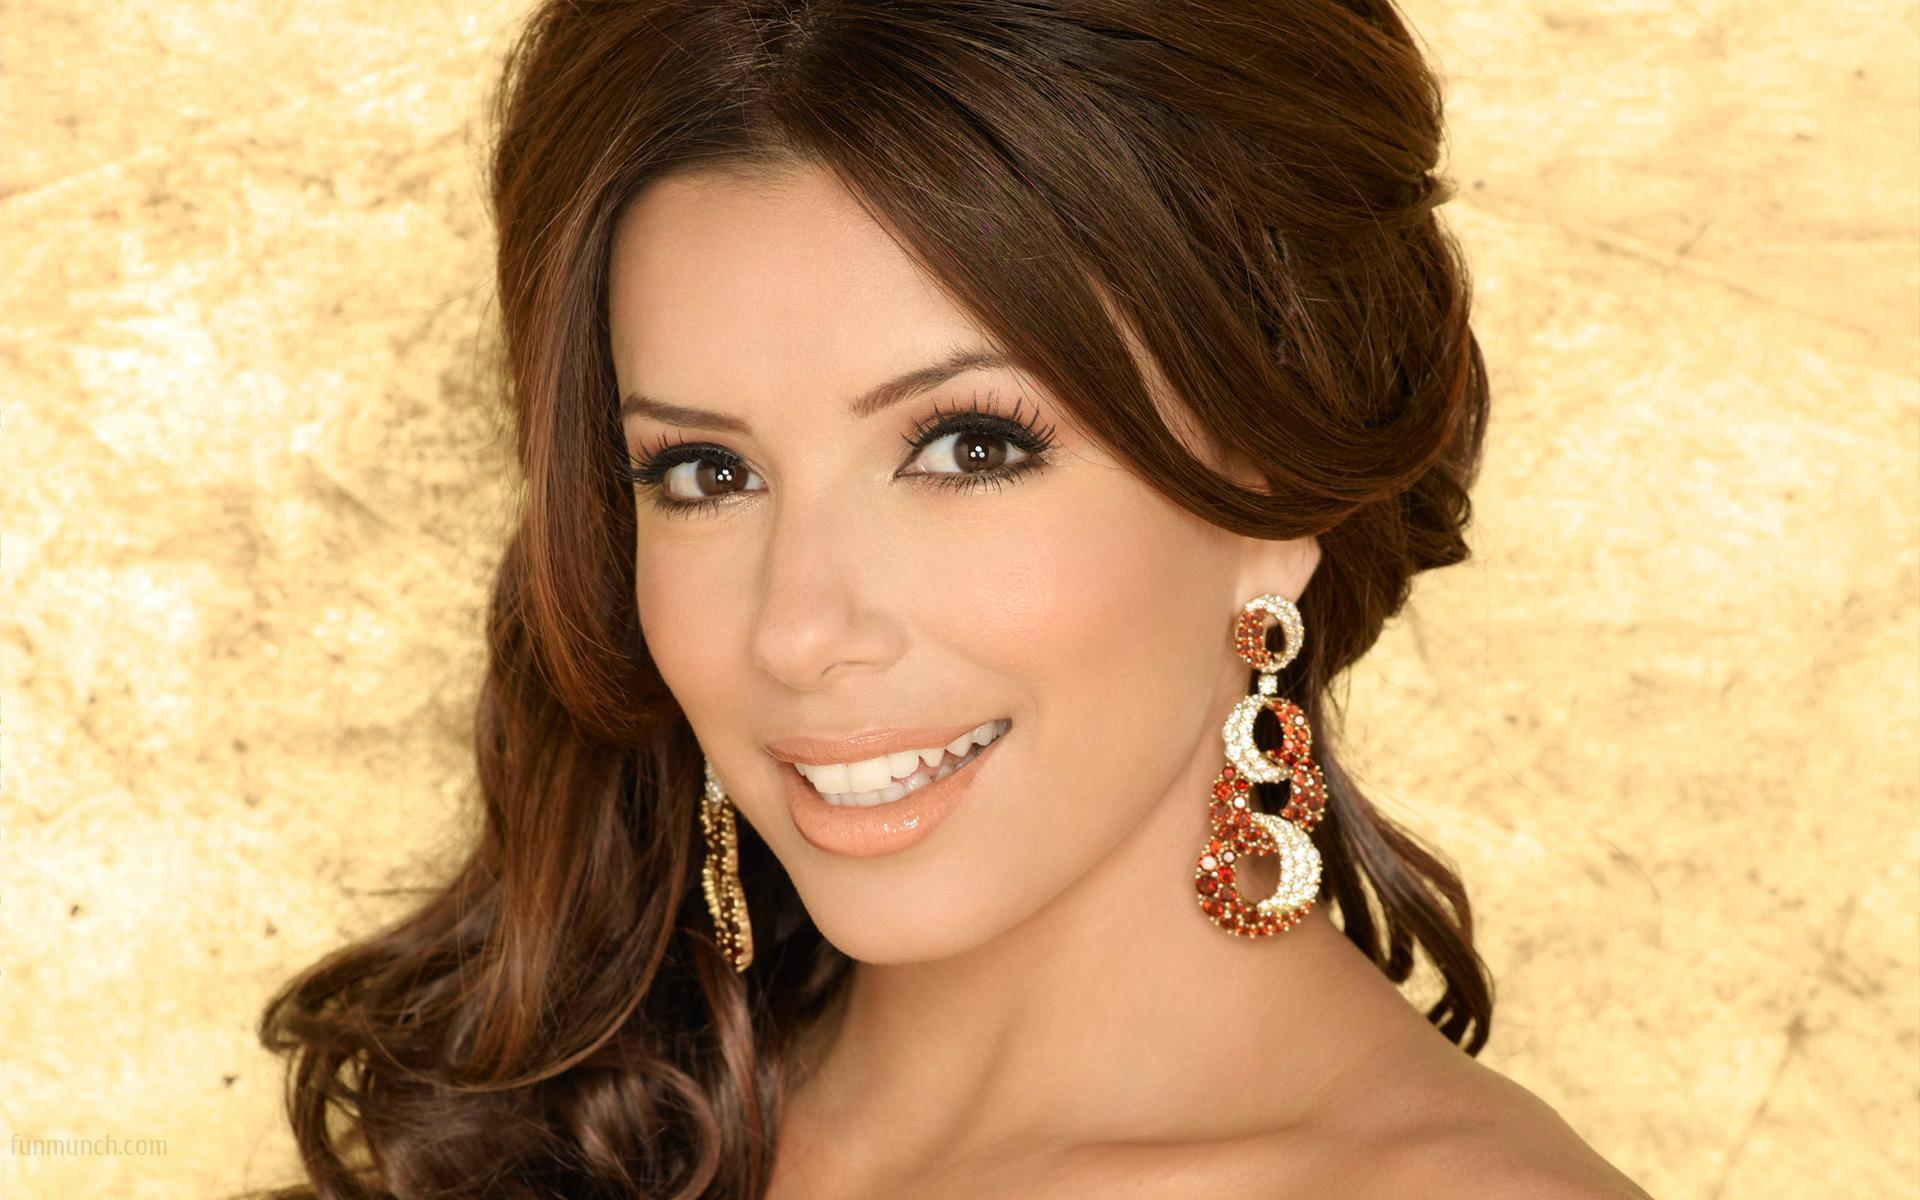 Eva longoria actress pictures